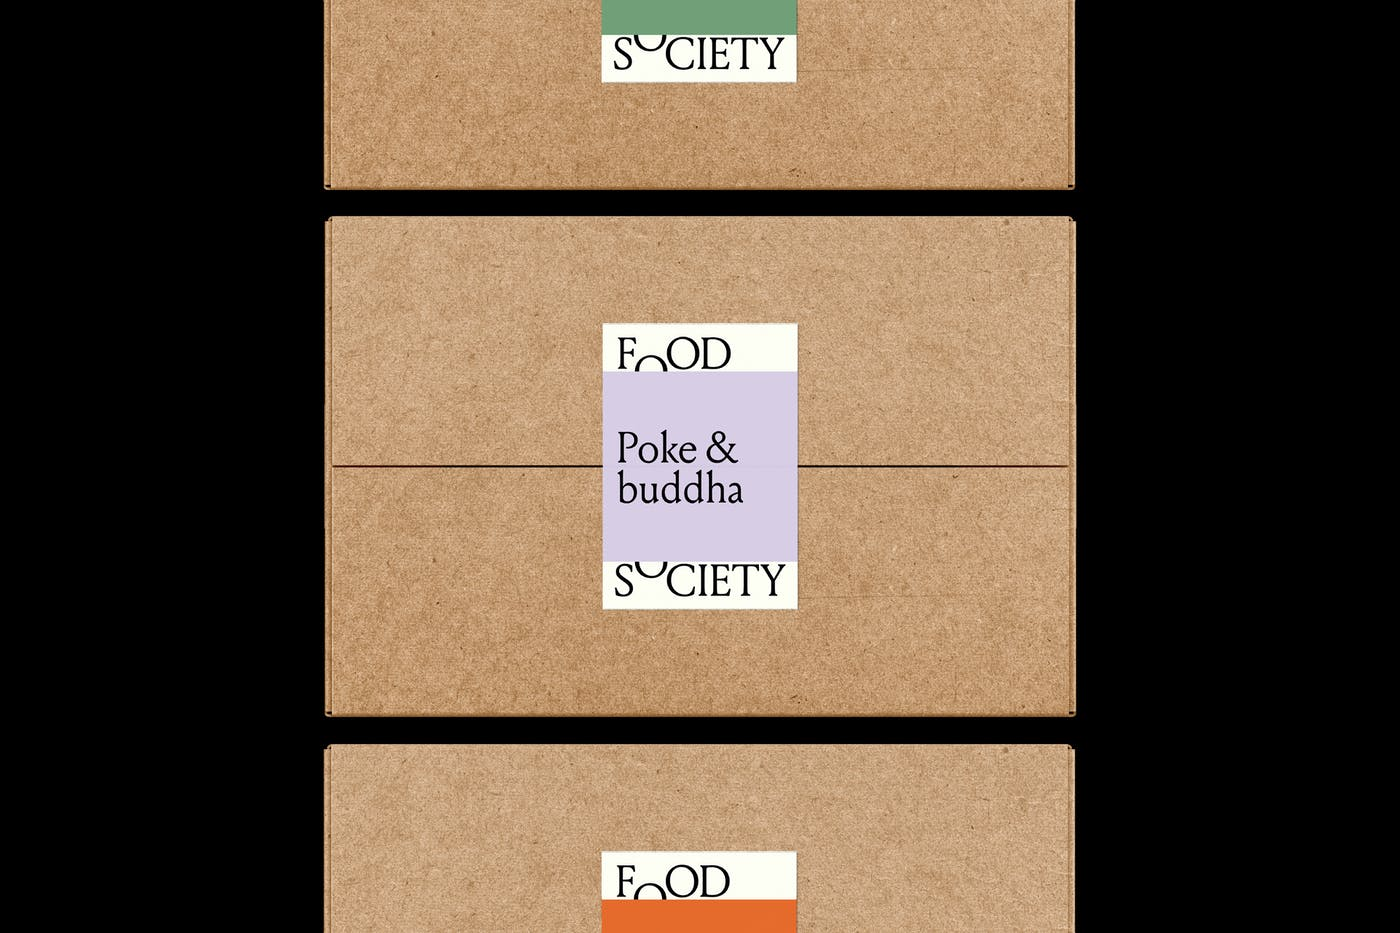 Food Society Boxes Stickers